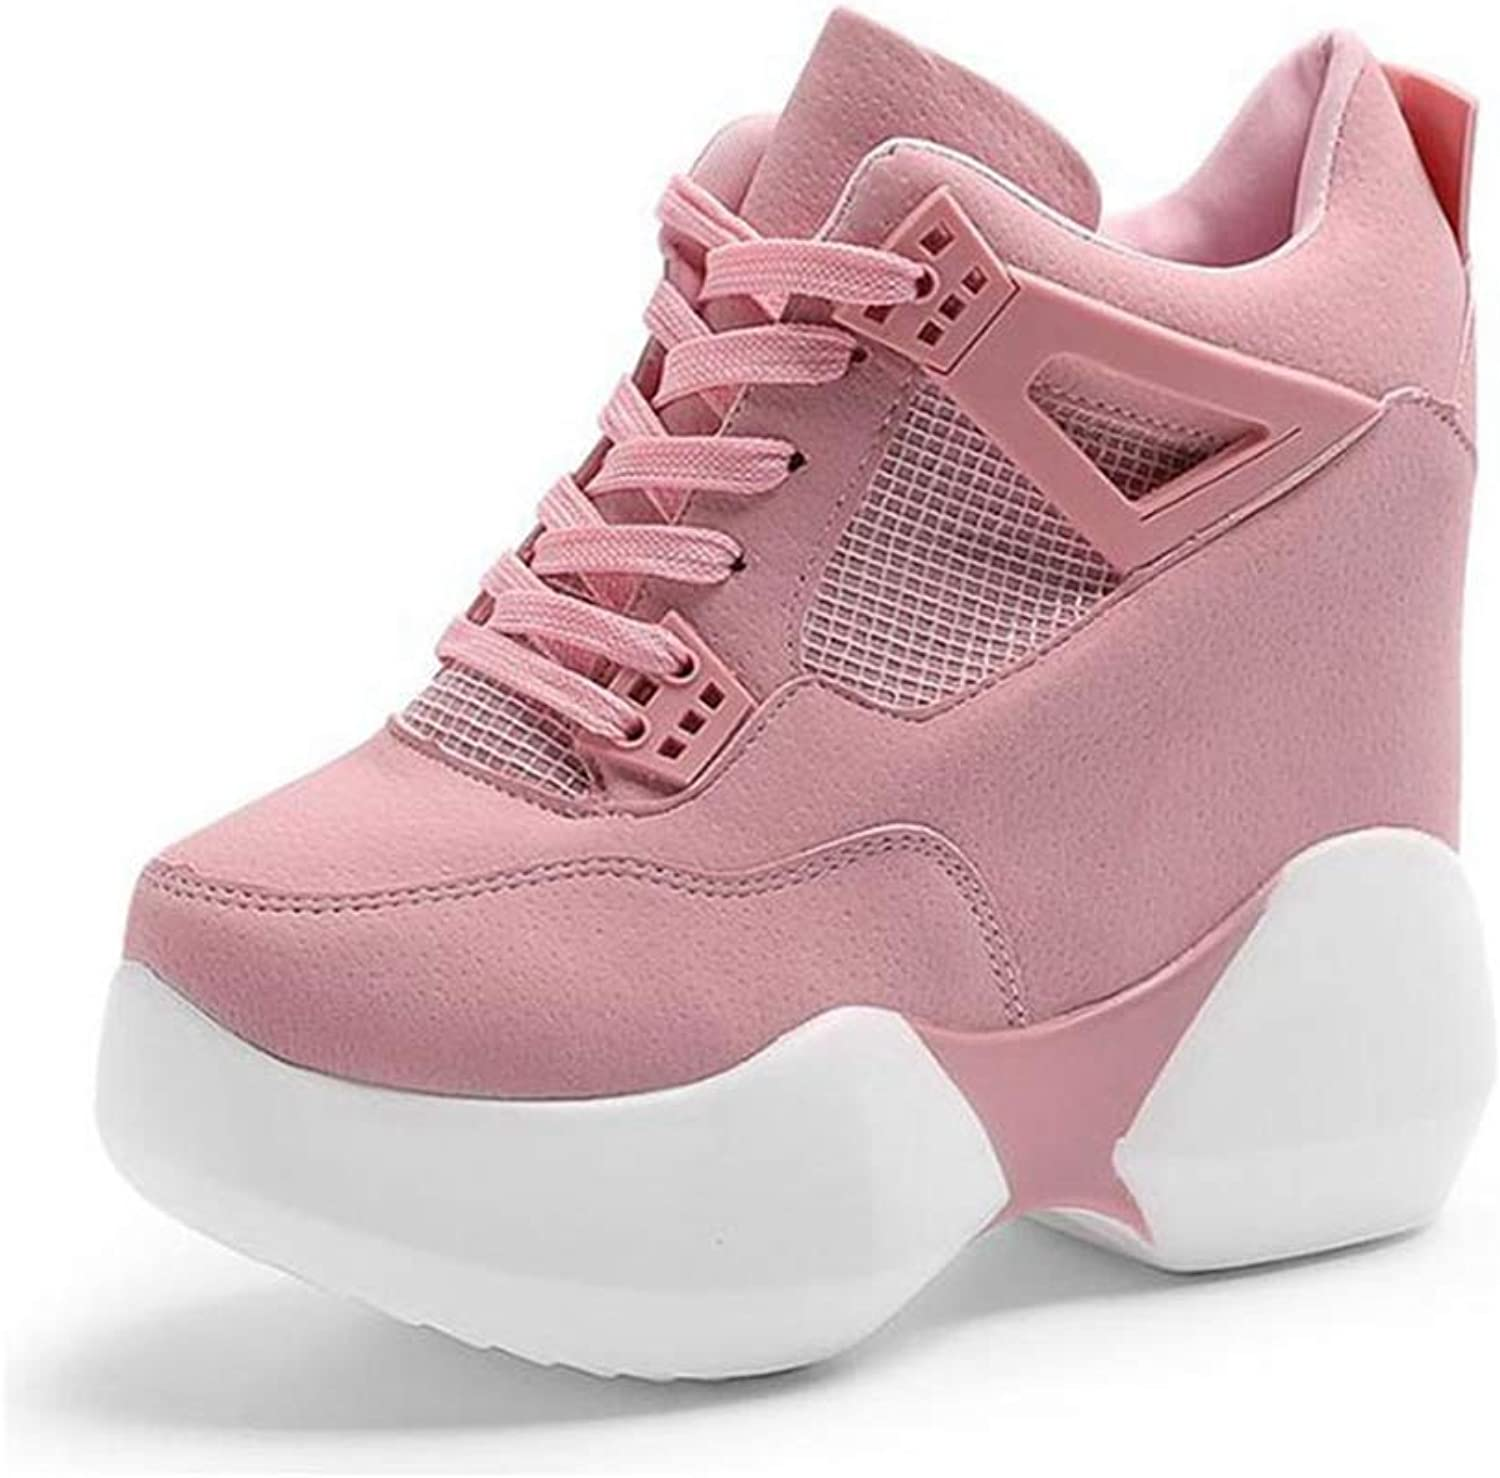 ASO-SLING Women's Fashion Platform Wedge Sneaker High Top Lace Up Flats Casual shoes Thick Sole Trainers